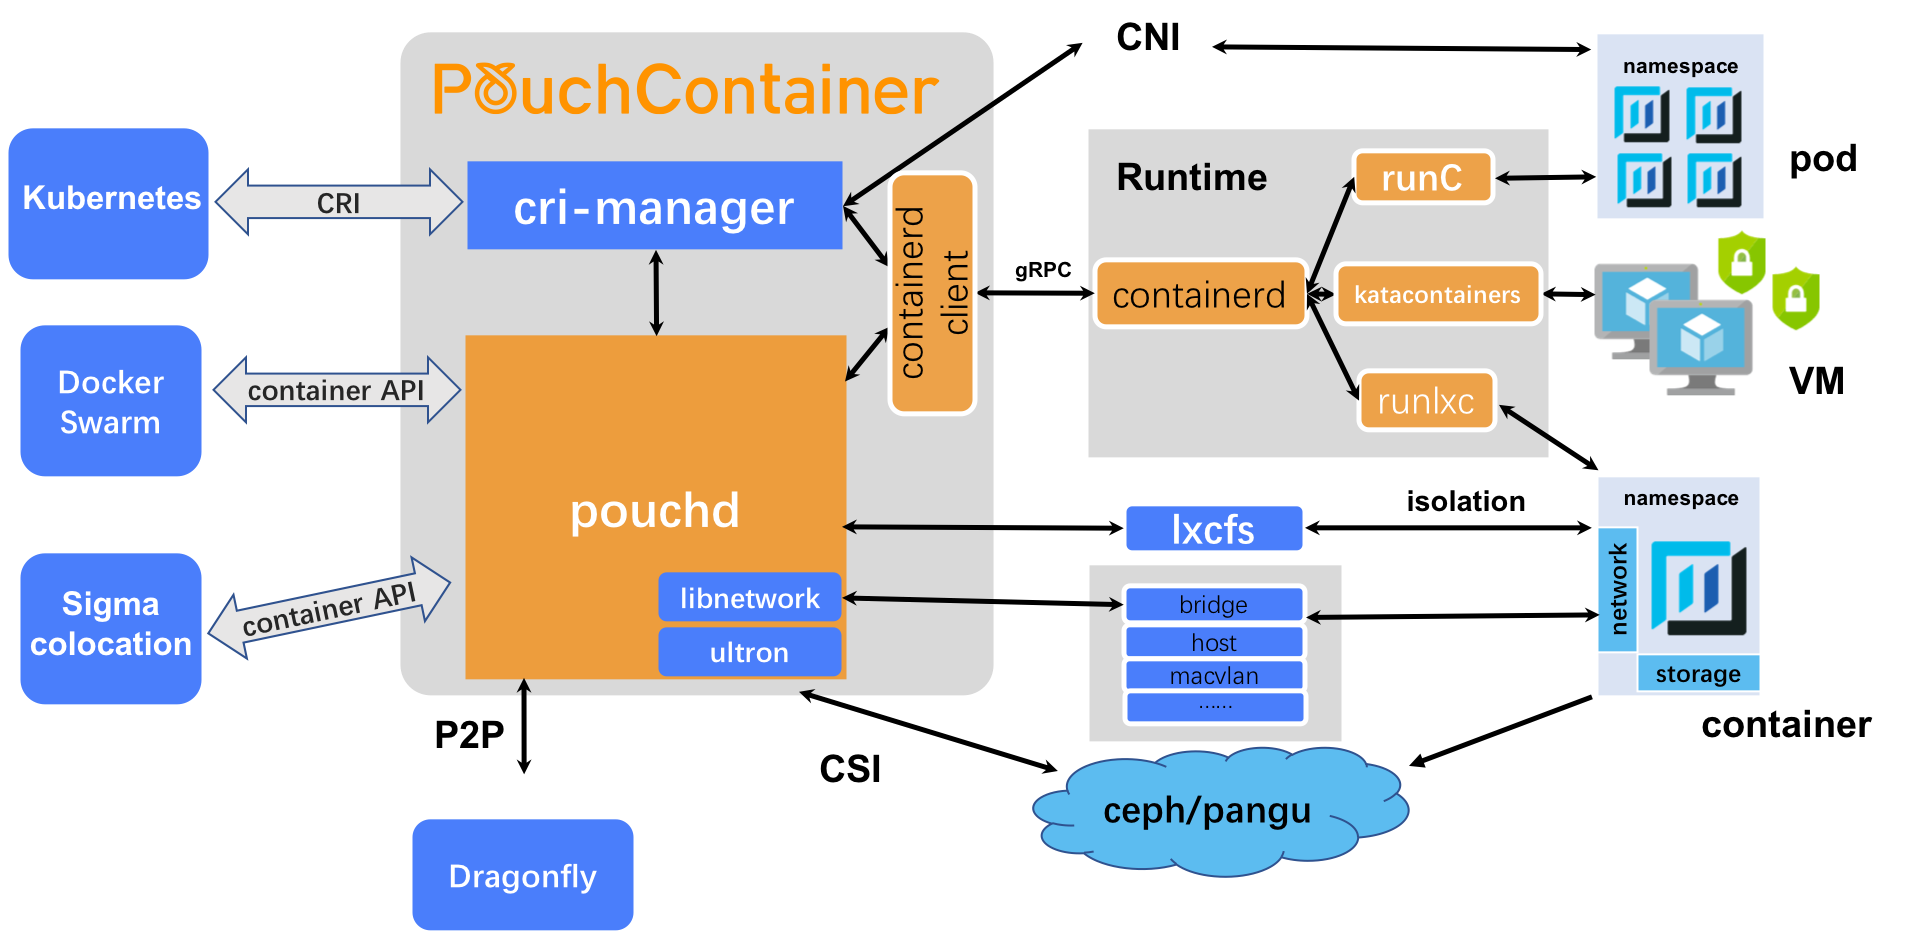 pouch_ecosystem_architecture_no_logo.png